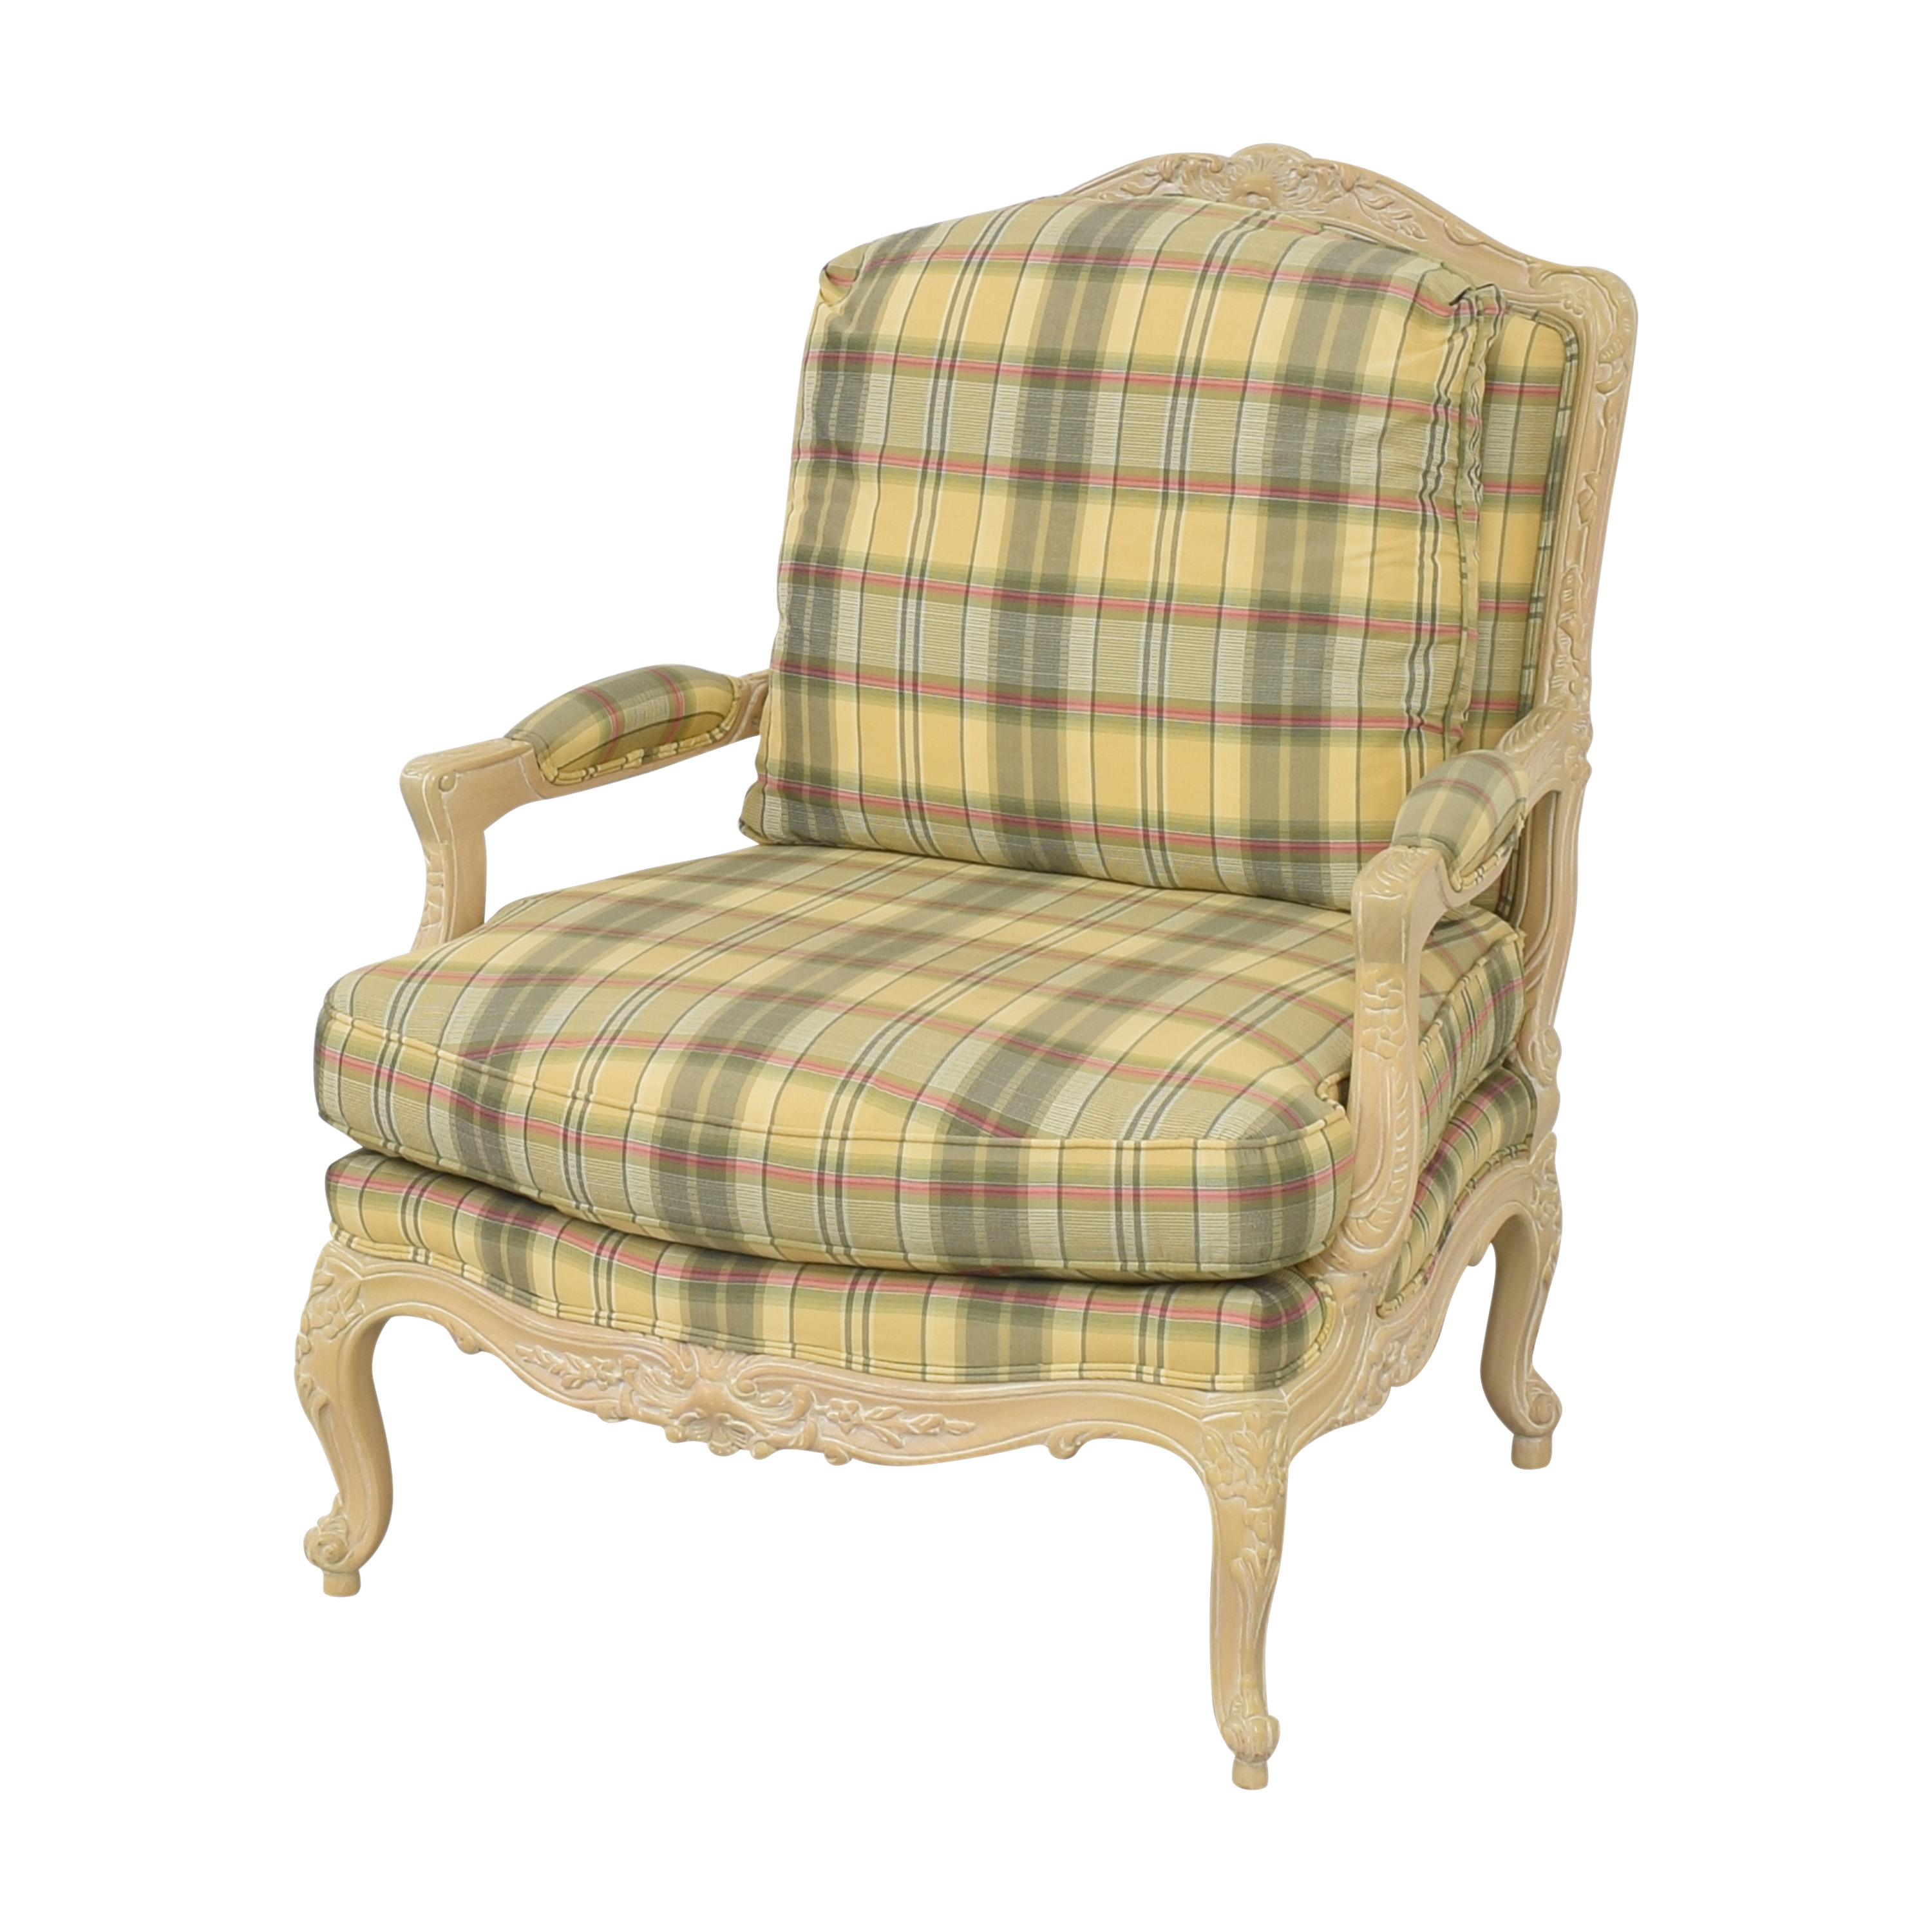 Sherrill Furniture Sherrill Furniture Plaid Carved Chair